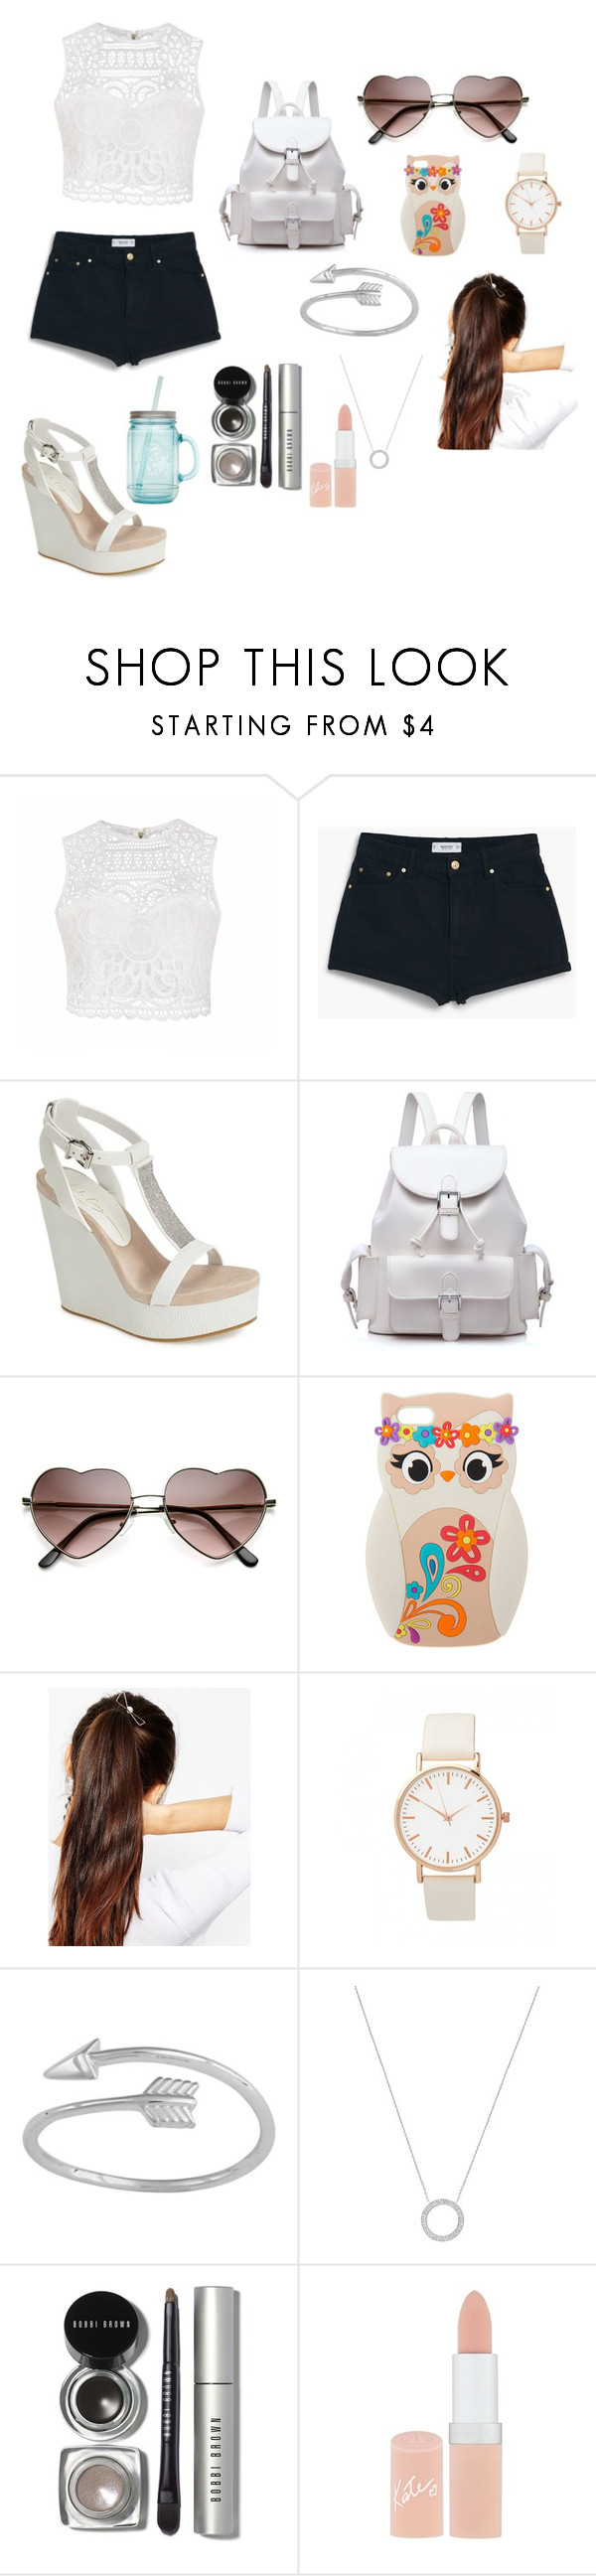 """Untitled #48"" by menna121 ❤ liked on Polyvore featuring Ally Fashion, MANGO, Lola Cruz, ASOS, Midsummer Star, Michael Kors, Bobbi Brown Cosmetics, Rimmel, ALADDIN and Mennasfashion"